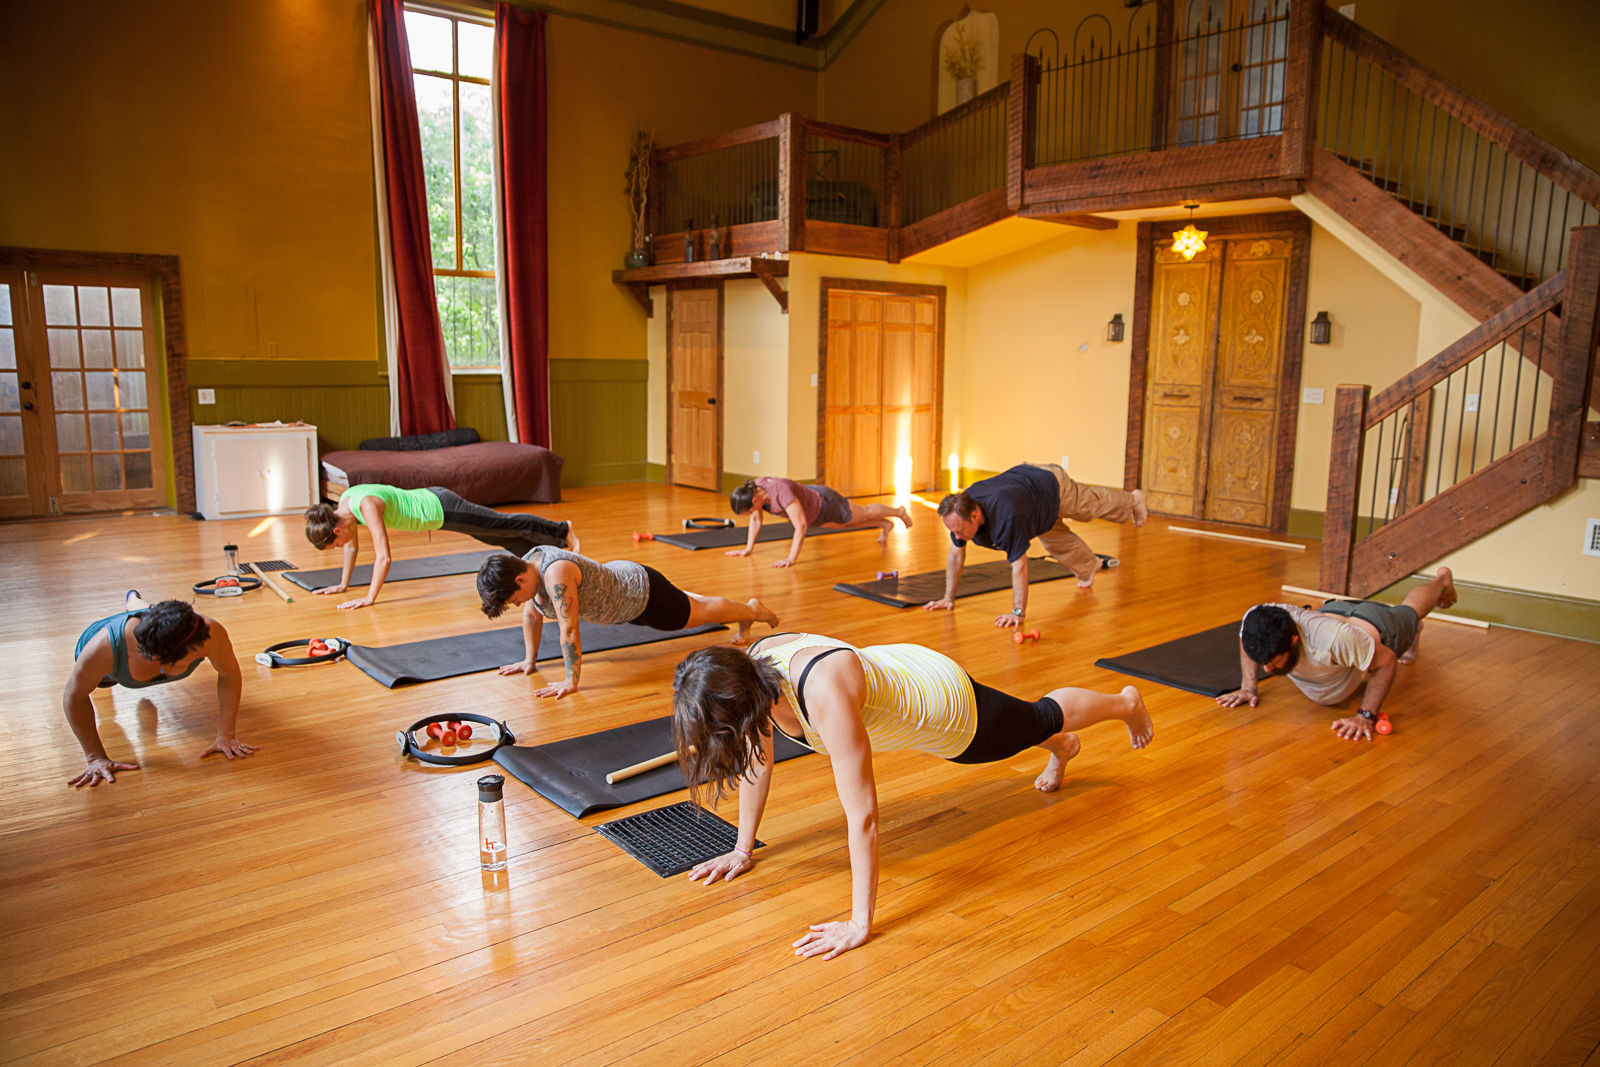 The Top Ten Reasons to Come to Cisco Pilates